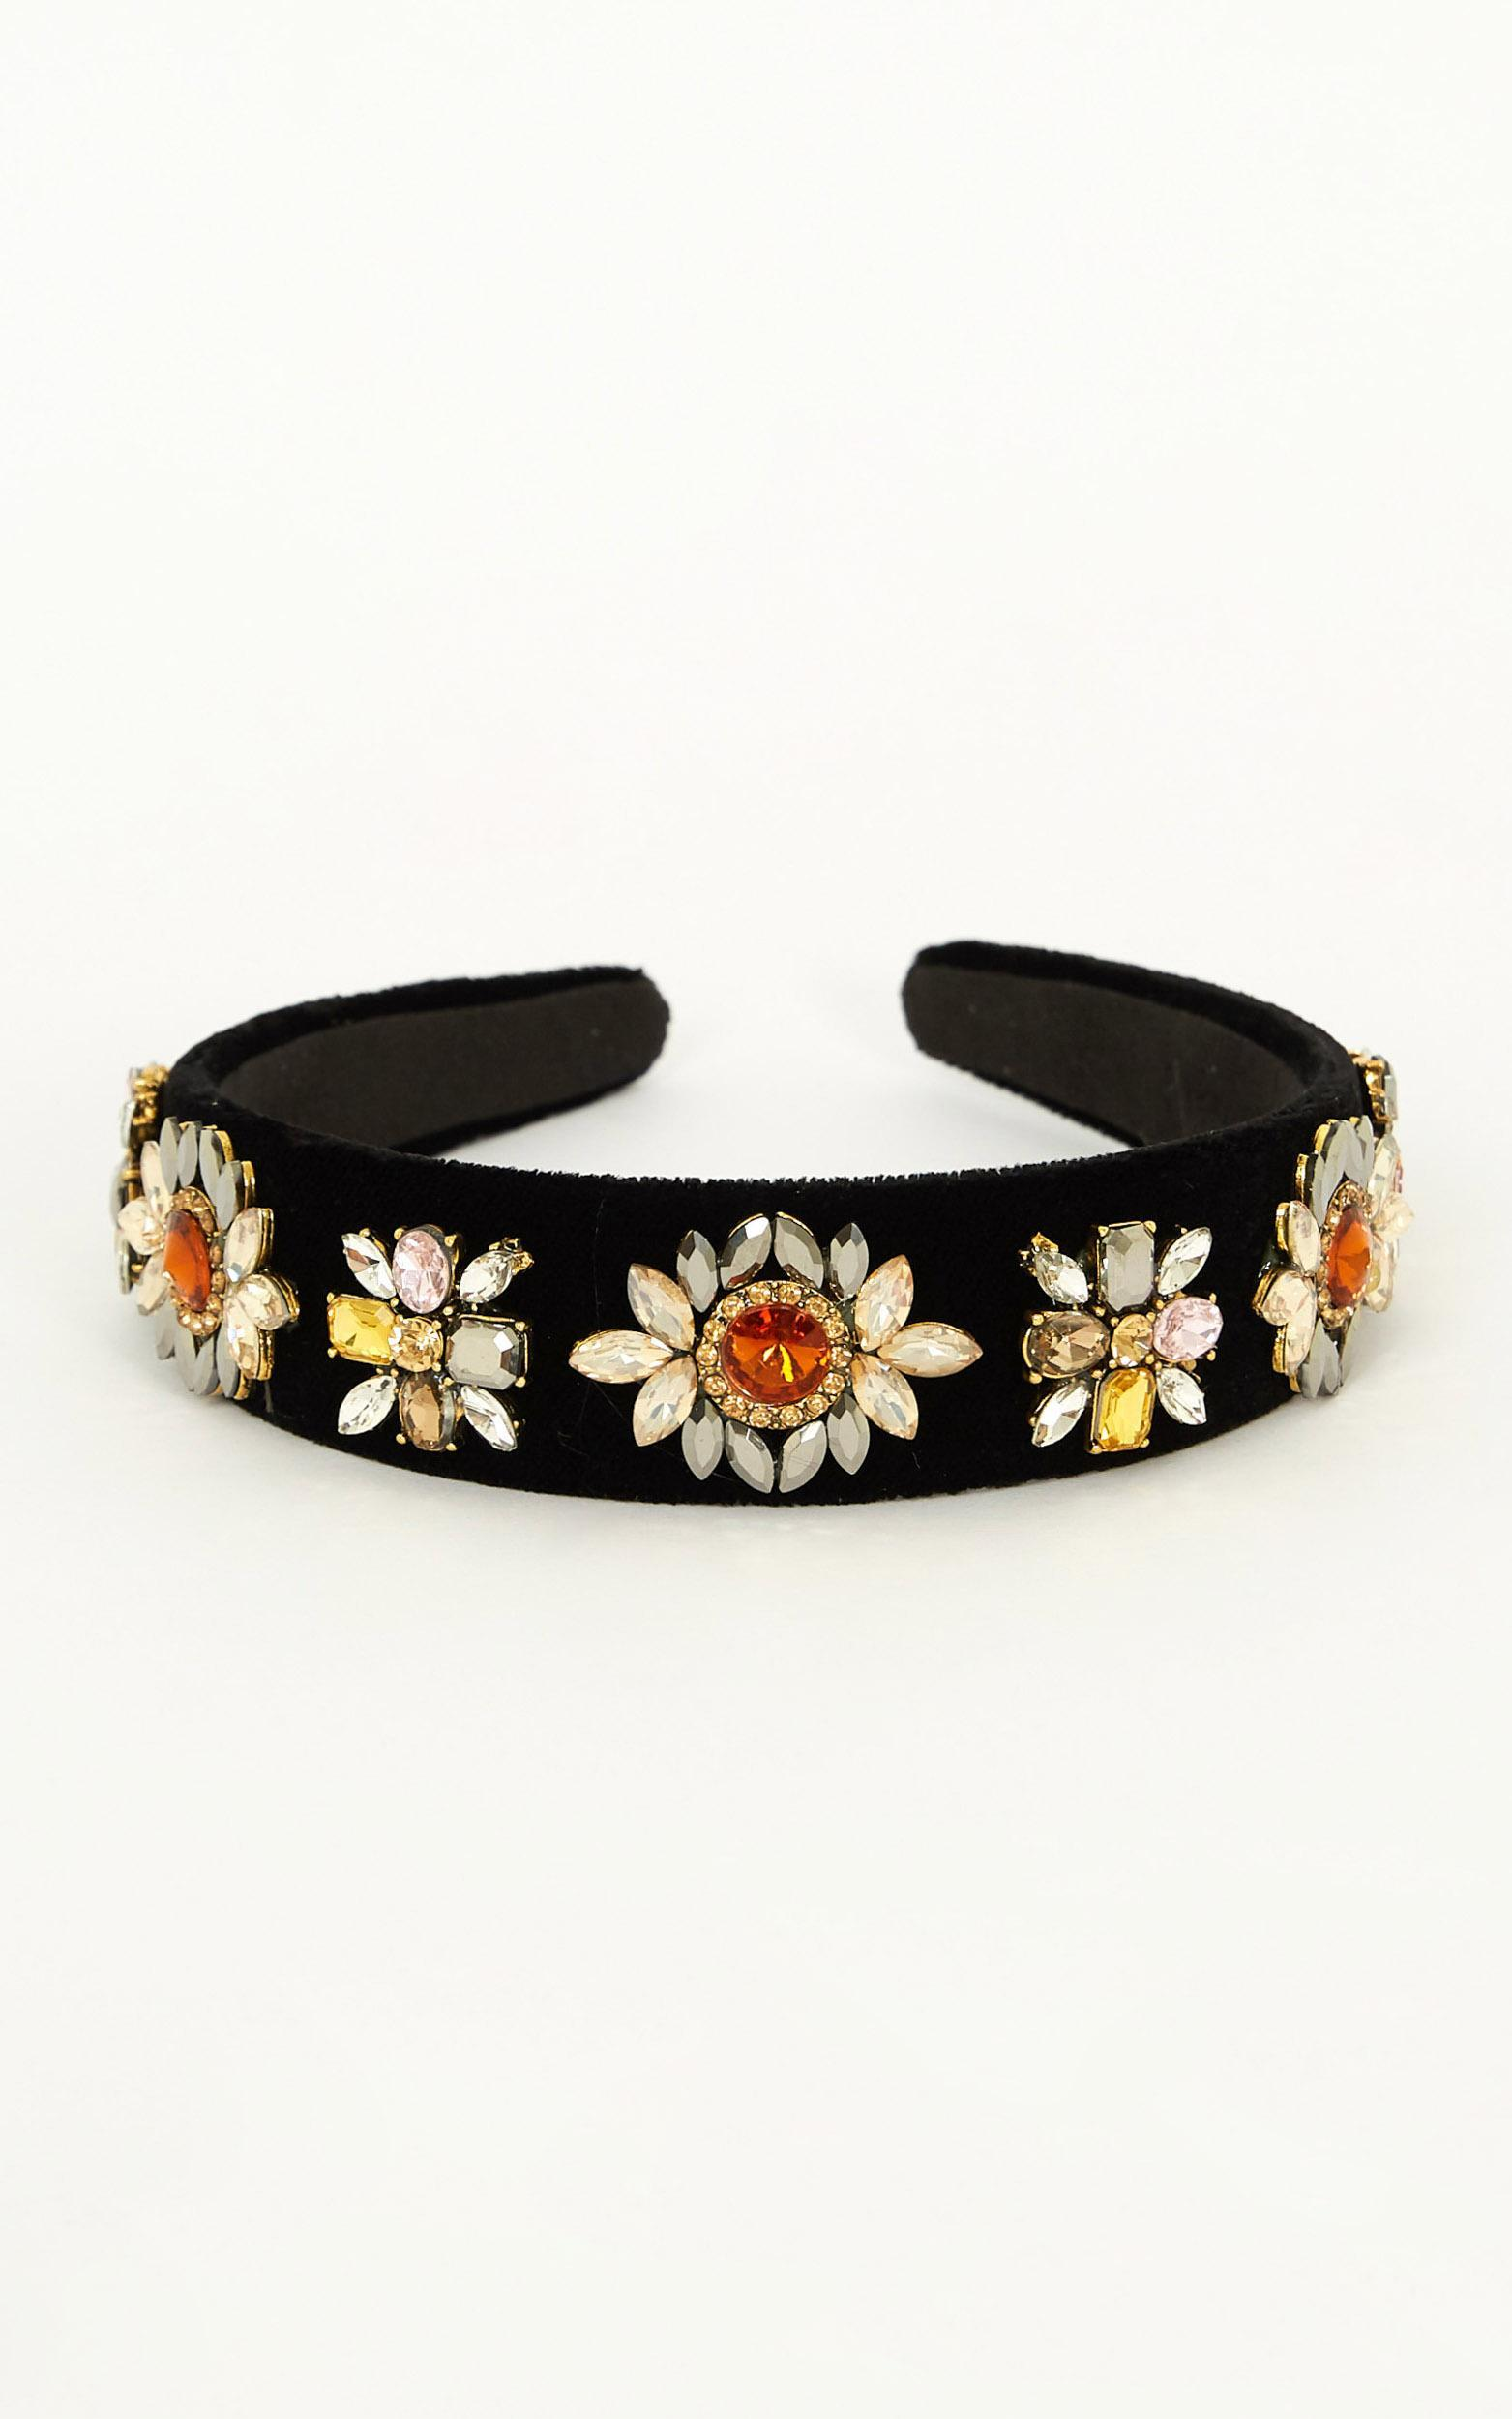 What Now Headband In Black And Rose Gold, , hi-res image number null